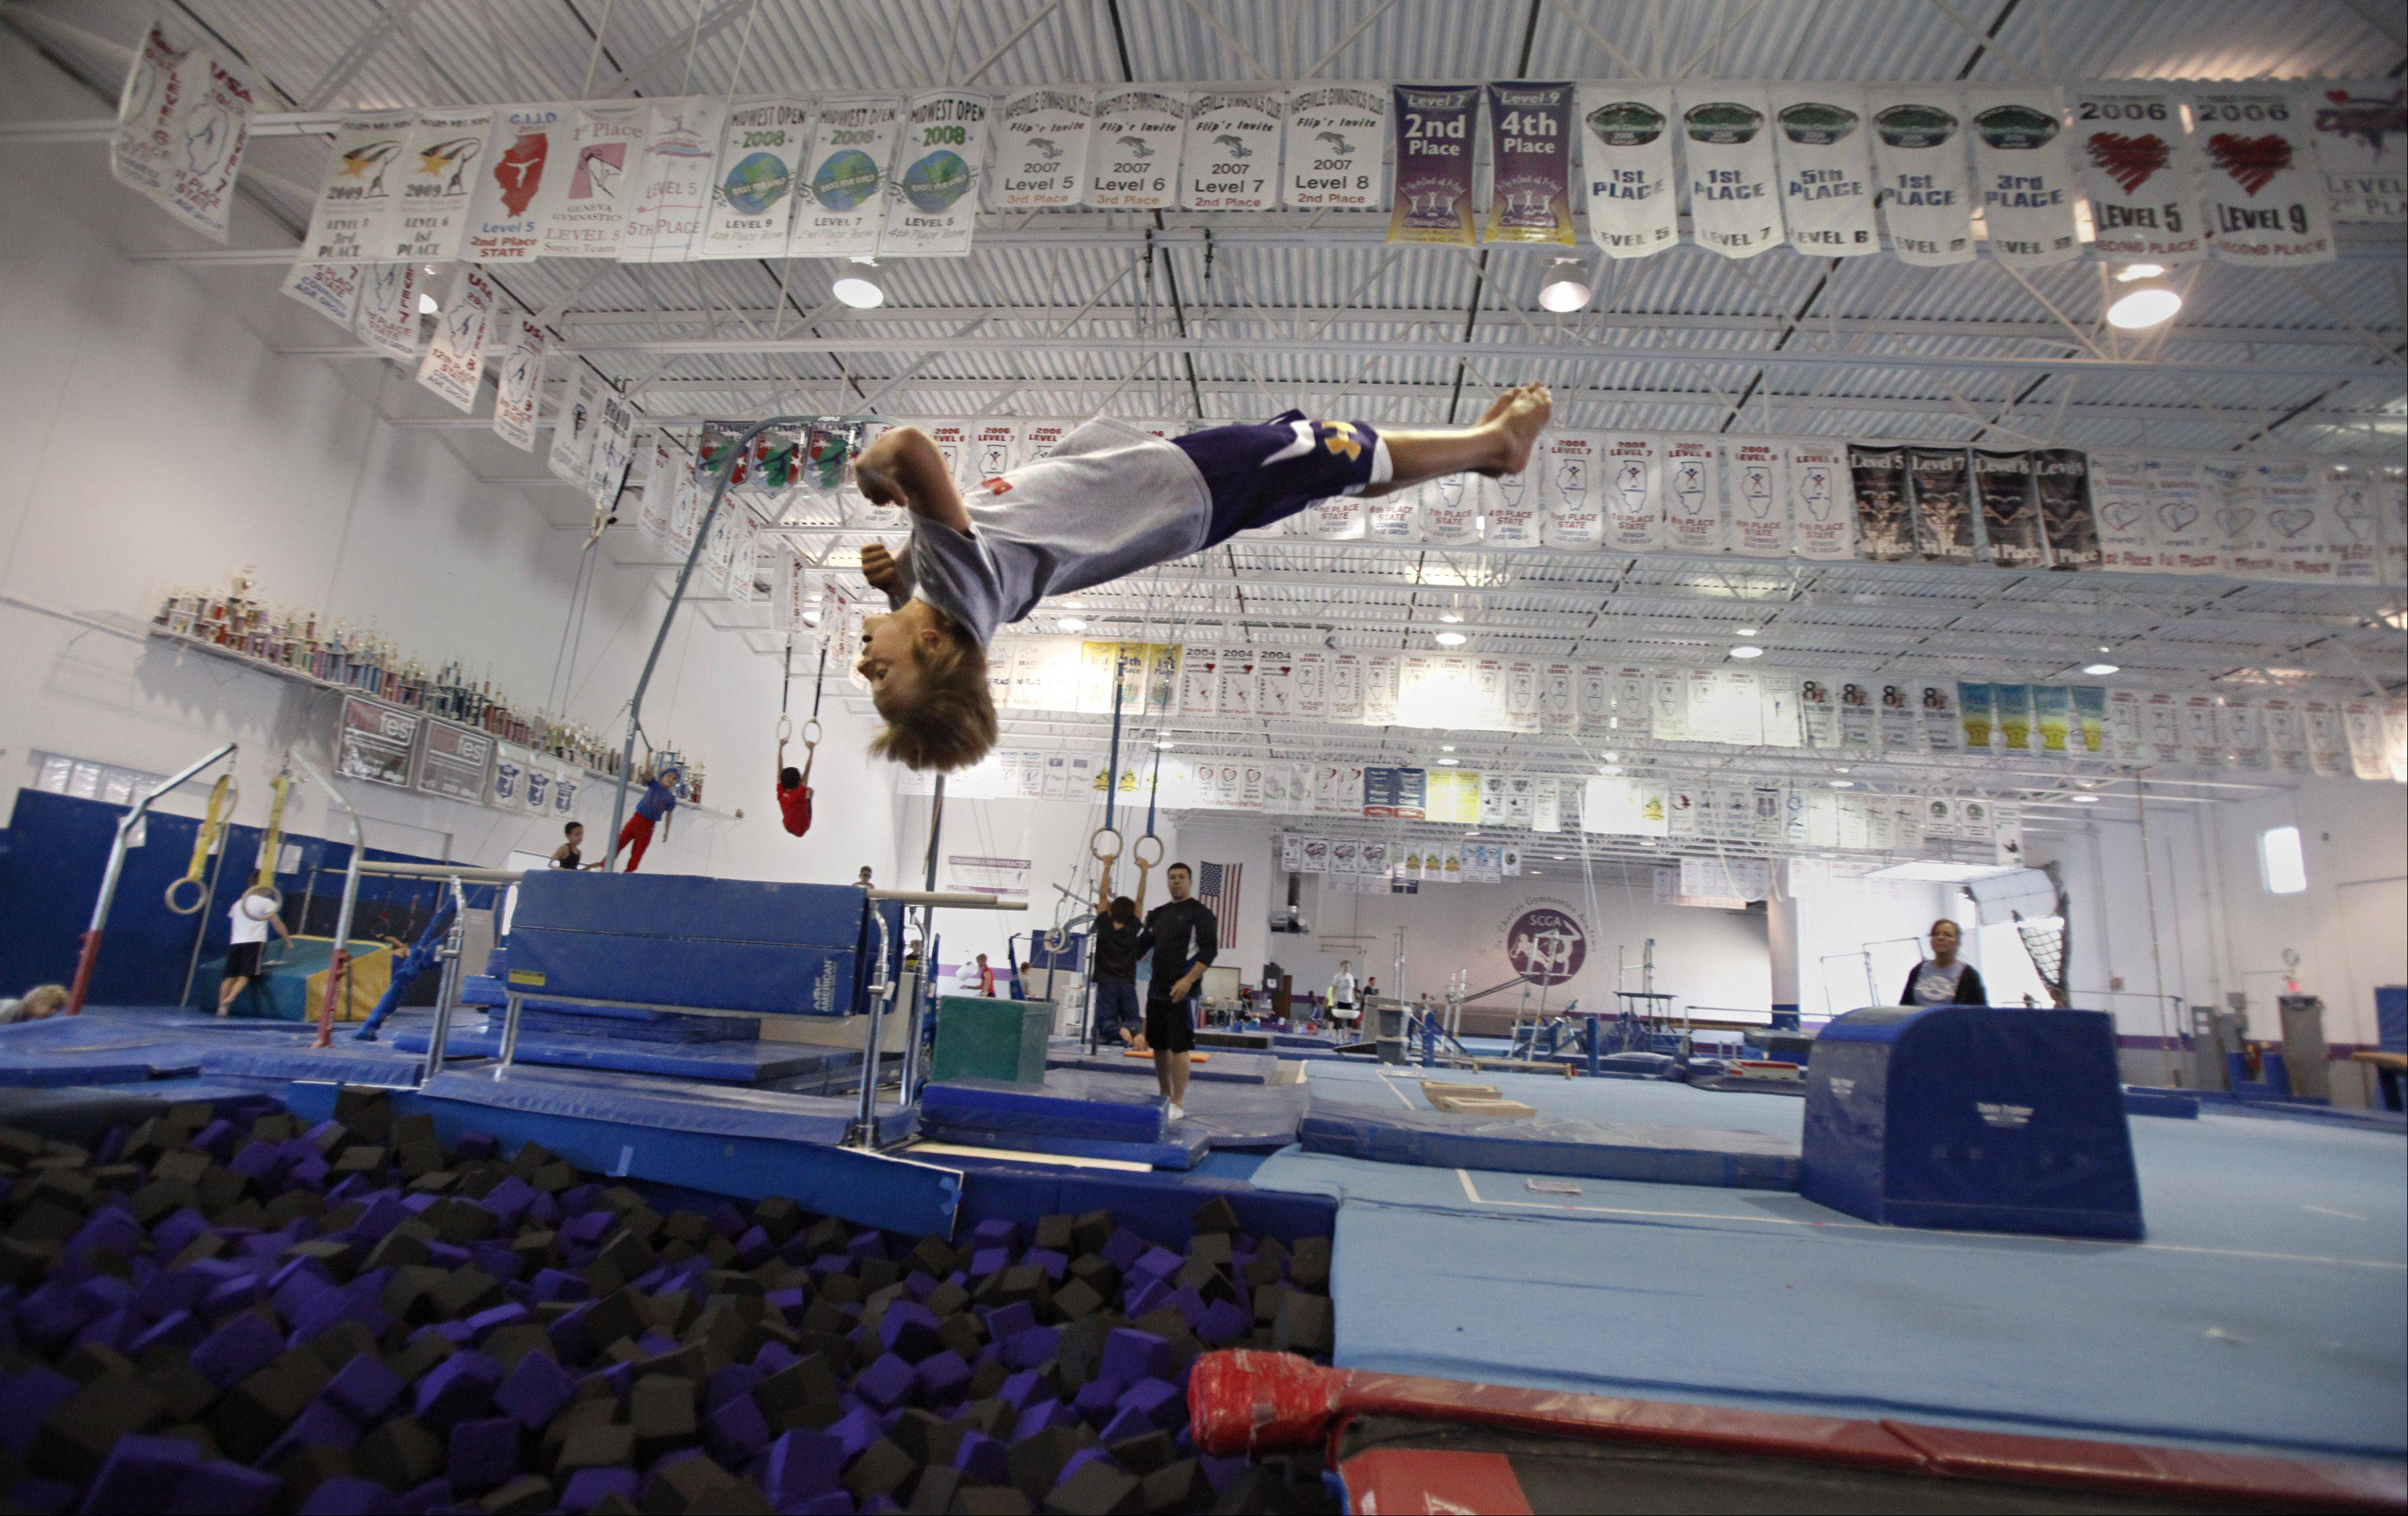 Gymnast Austin Jones, 12, of St. Charles, is recovering from a stress fracture in his wrist but can still soar through the air in impressive fashion. He took the gold medal in the vault and placed 5th in the parallel bars in his age and level at the 2013 Junior Olympic Championships held in Portland, Ore.